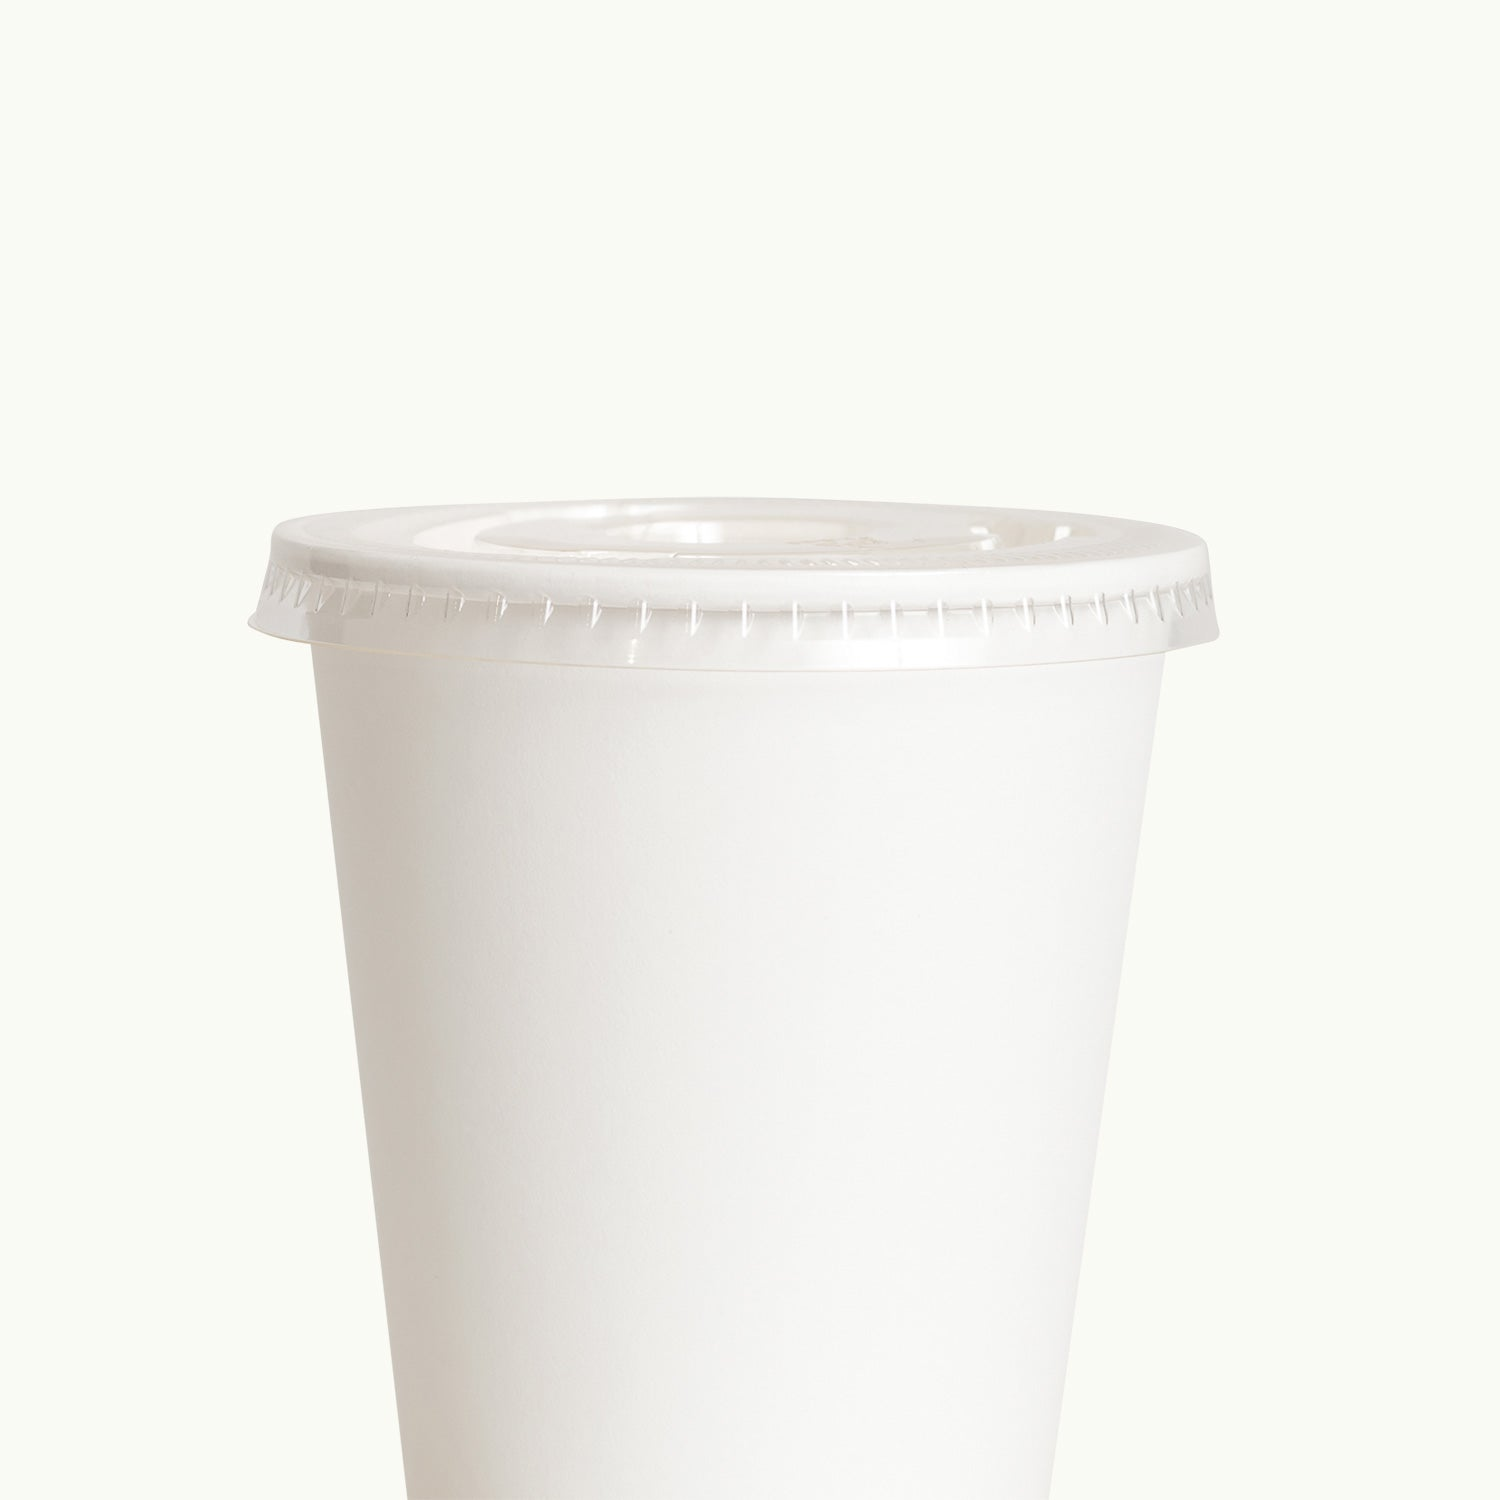 Bioplastic EcoCup Lid with Straw Hole